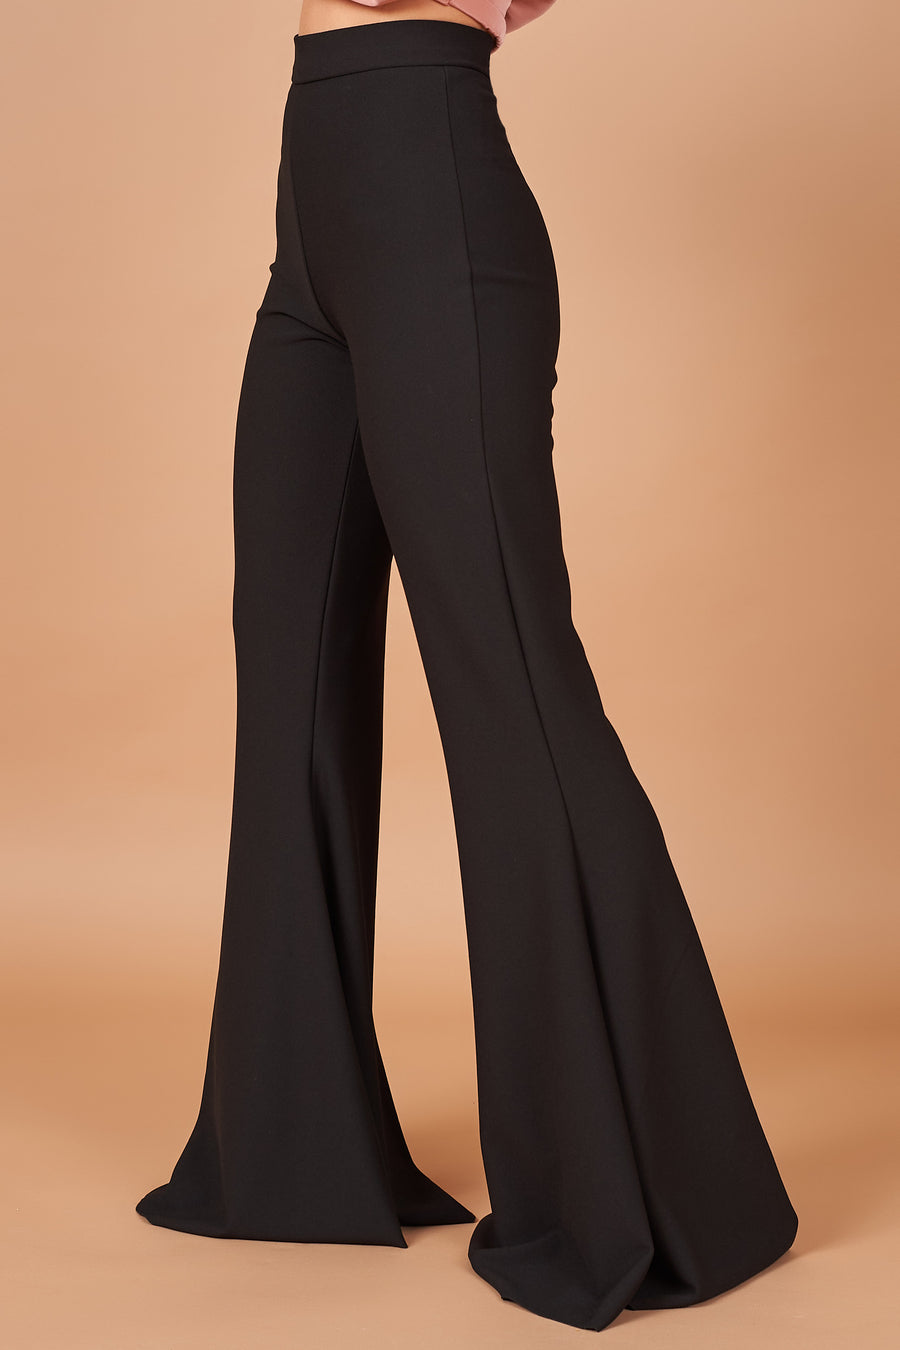 Black Stretch Flares